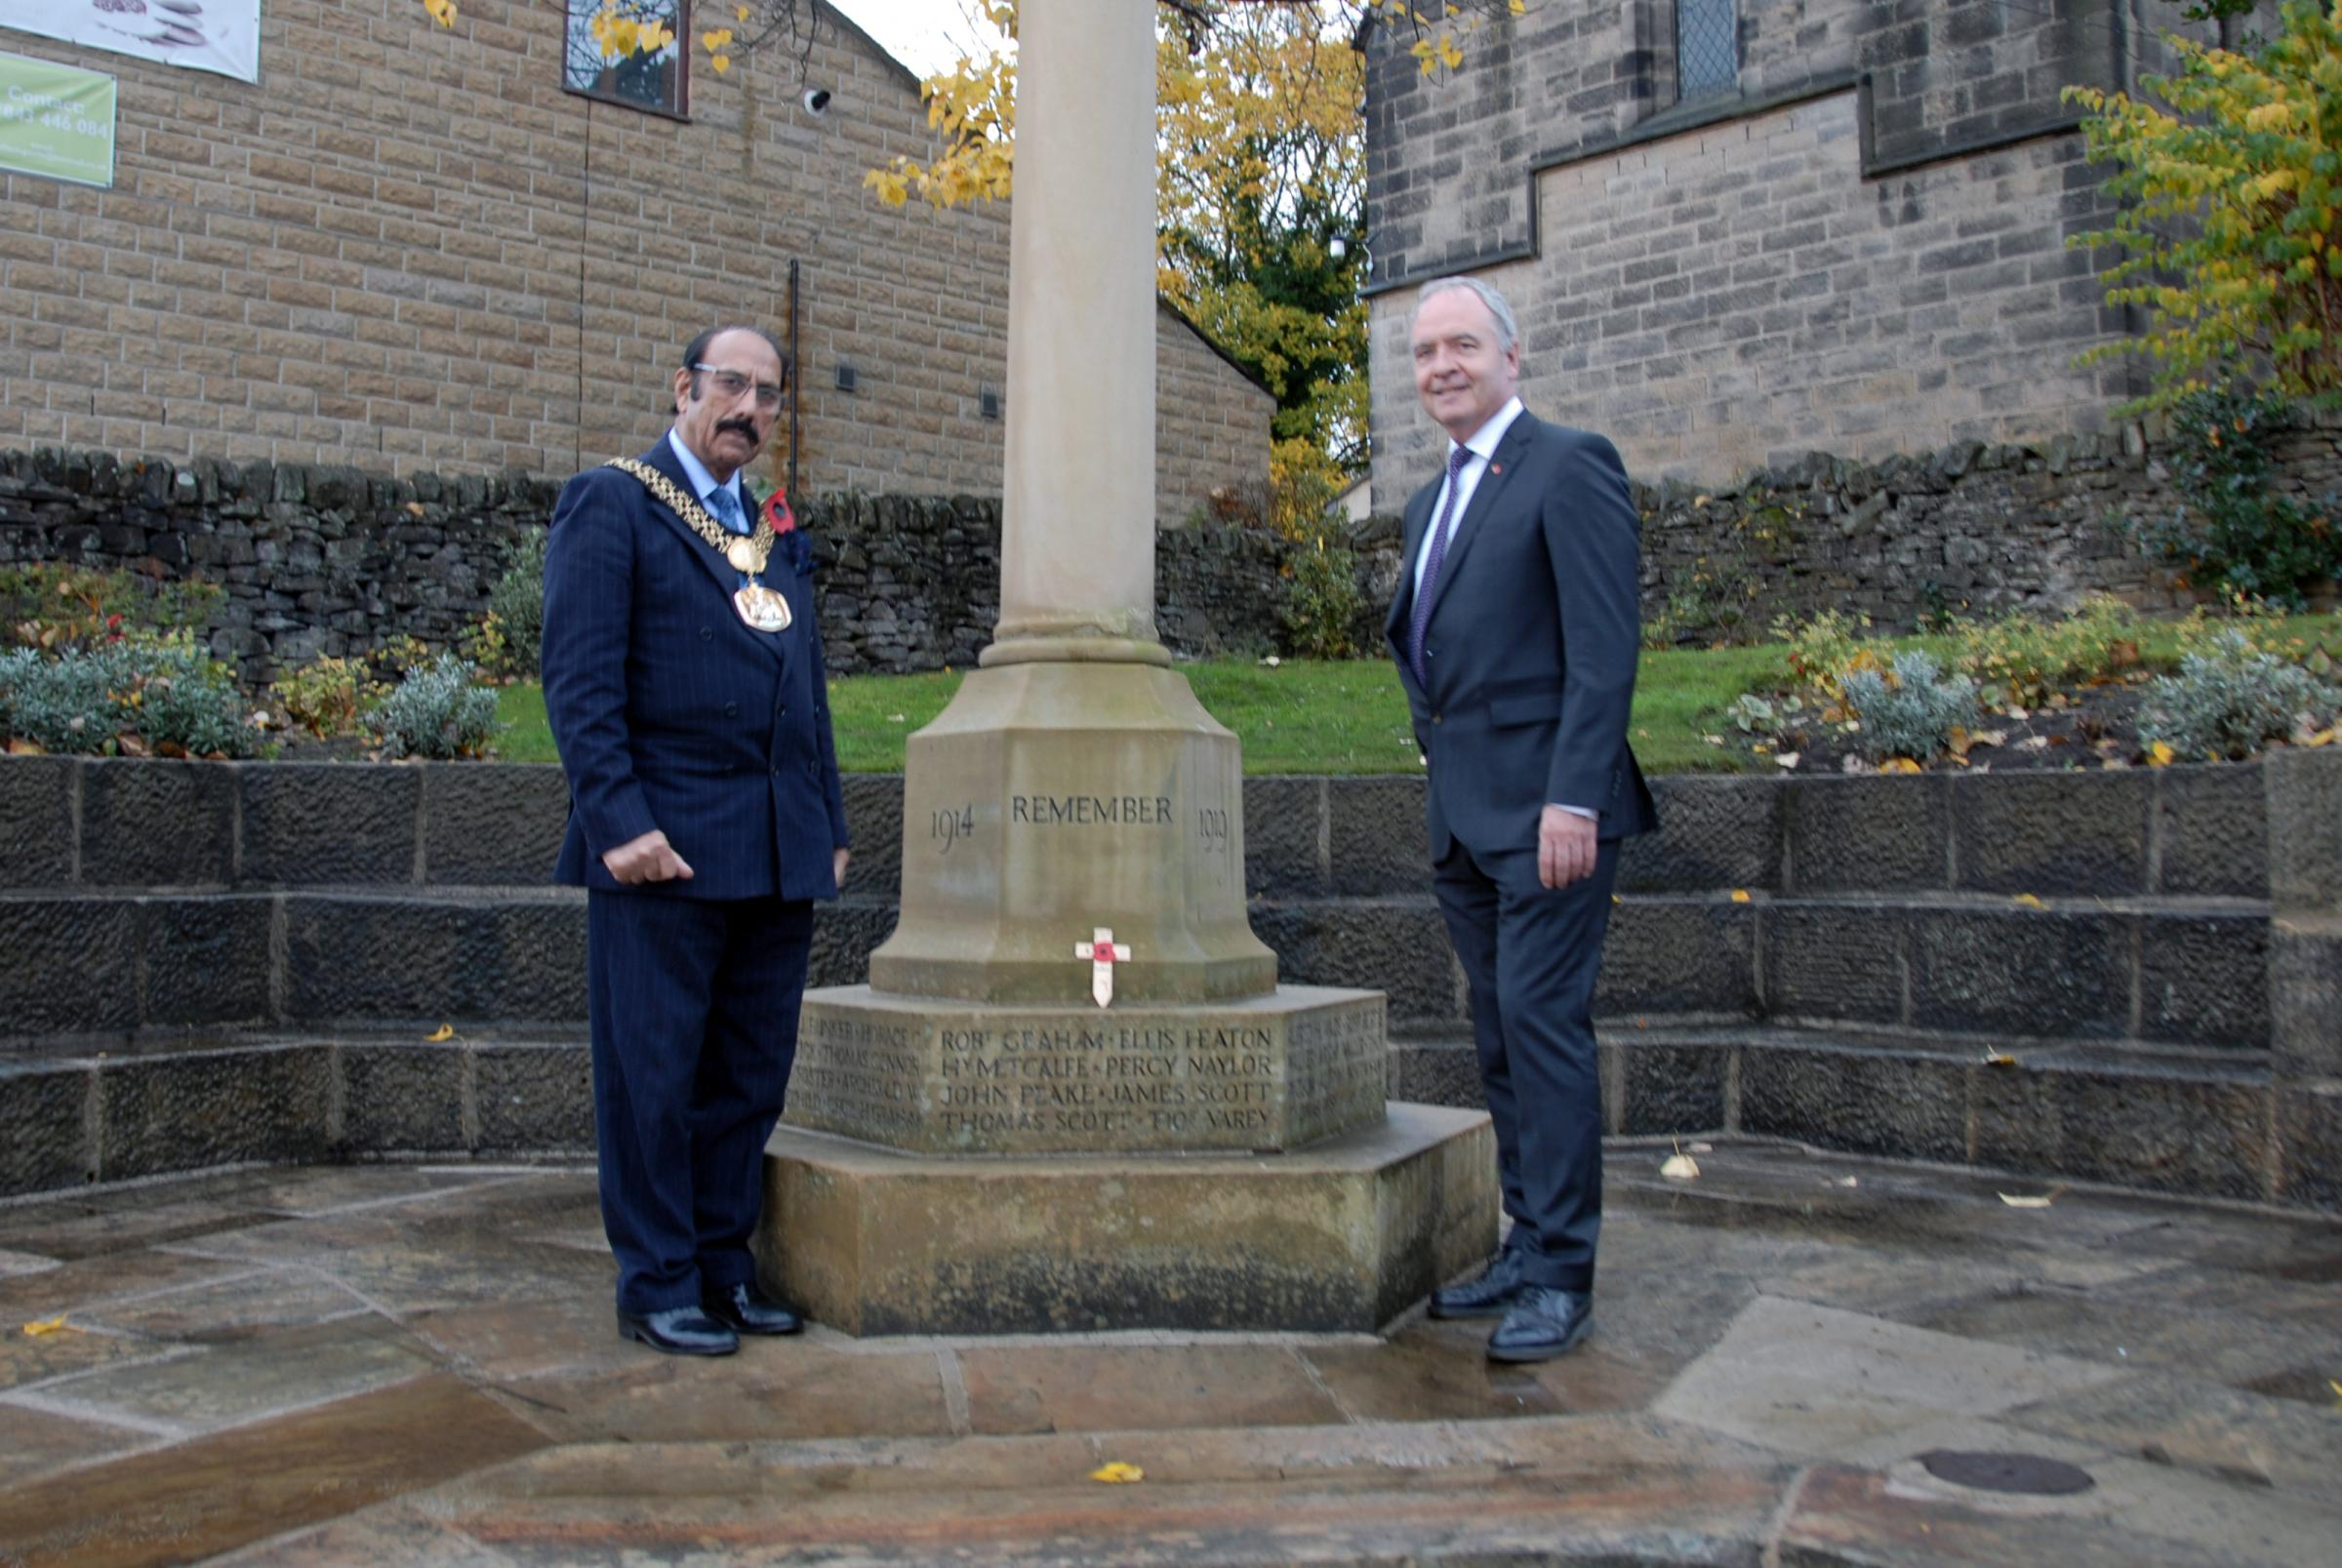 The Lord of Bradford, Cllr Zafar Ali, at Harden war memorial with parish council chairman Councillor Gerwyn Bryan attended a special event at Harden War Memorial.